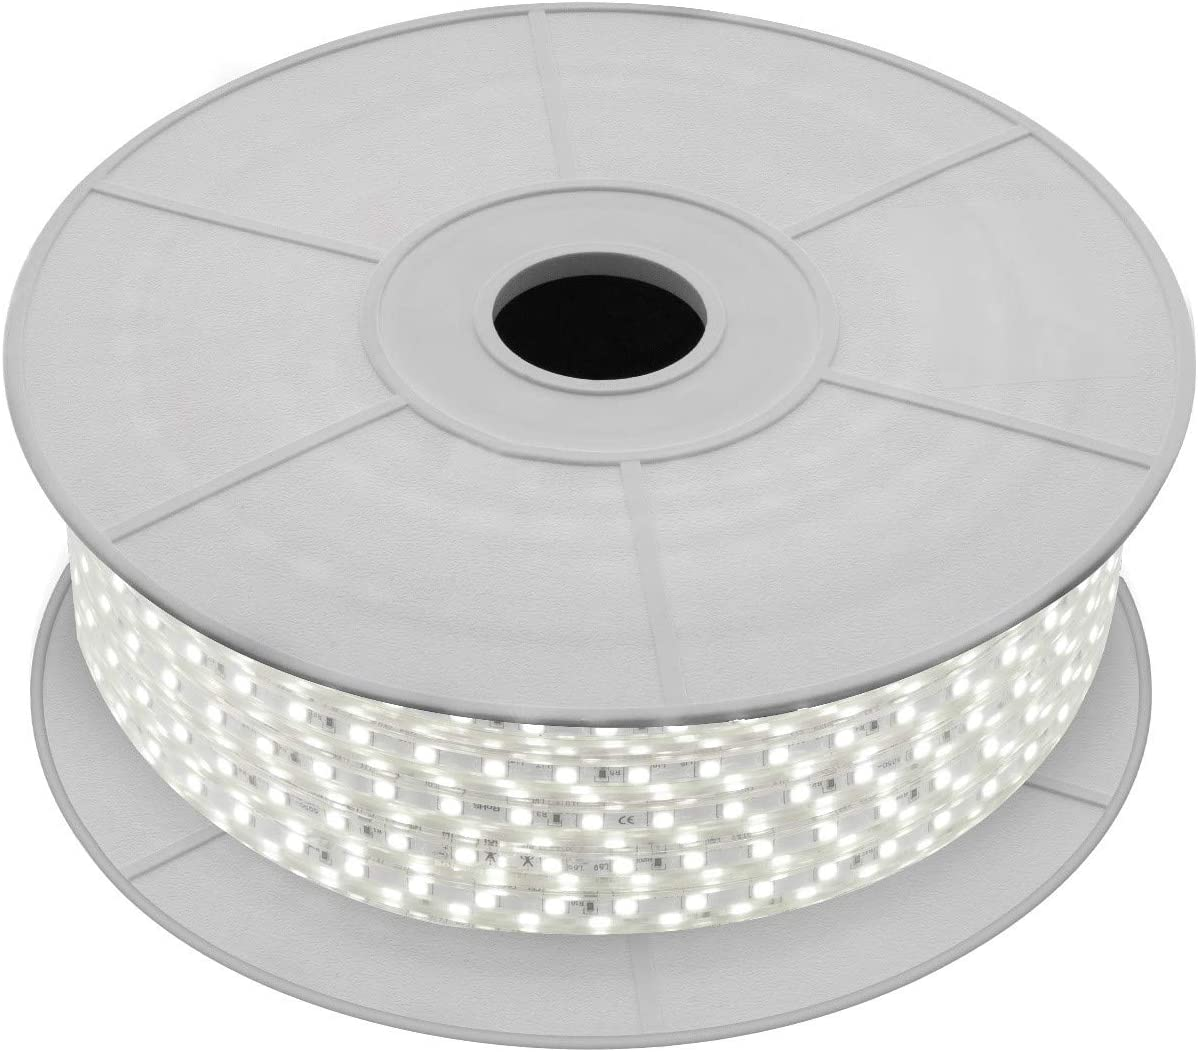 LEDKIA LIGHTING Bobina de Tira LED Regulable 220V AC 60 LED/m 50m Blanco Neutro IP65 Corte a los 100cm